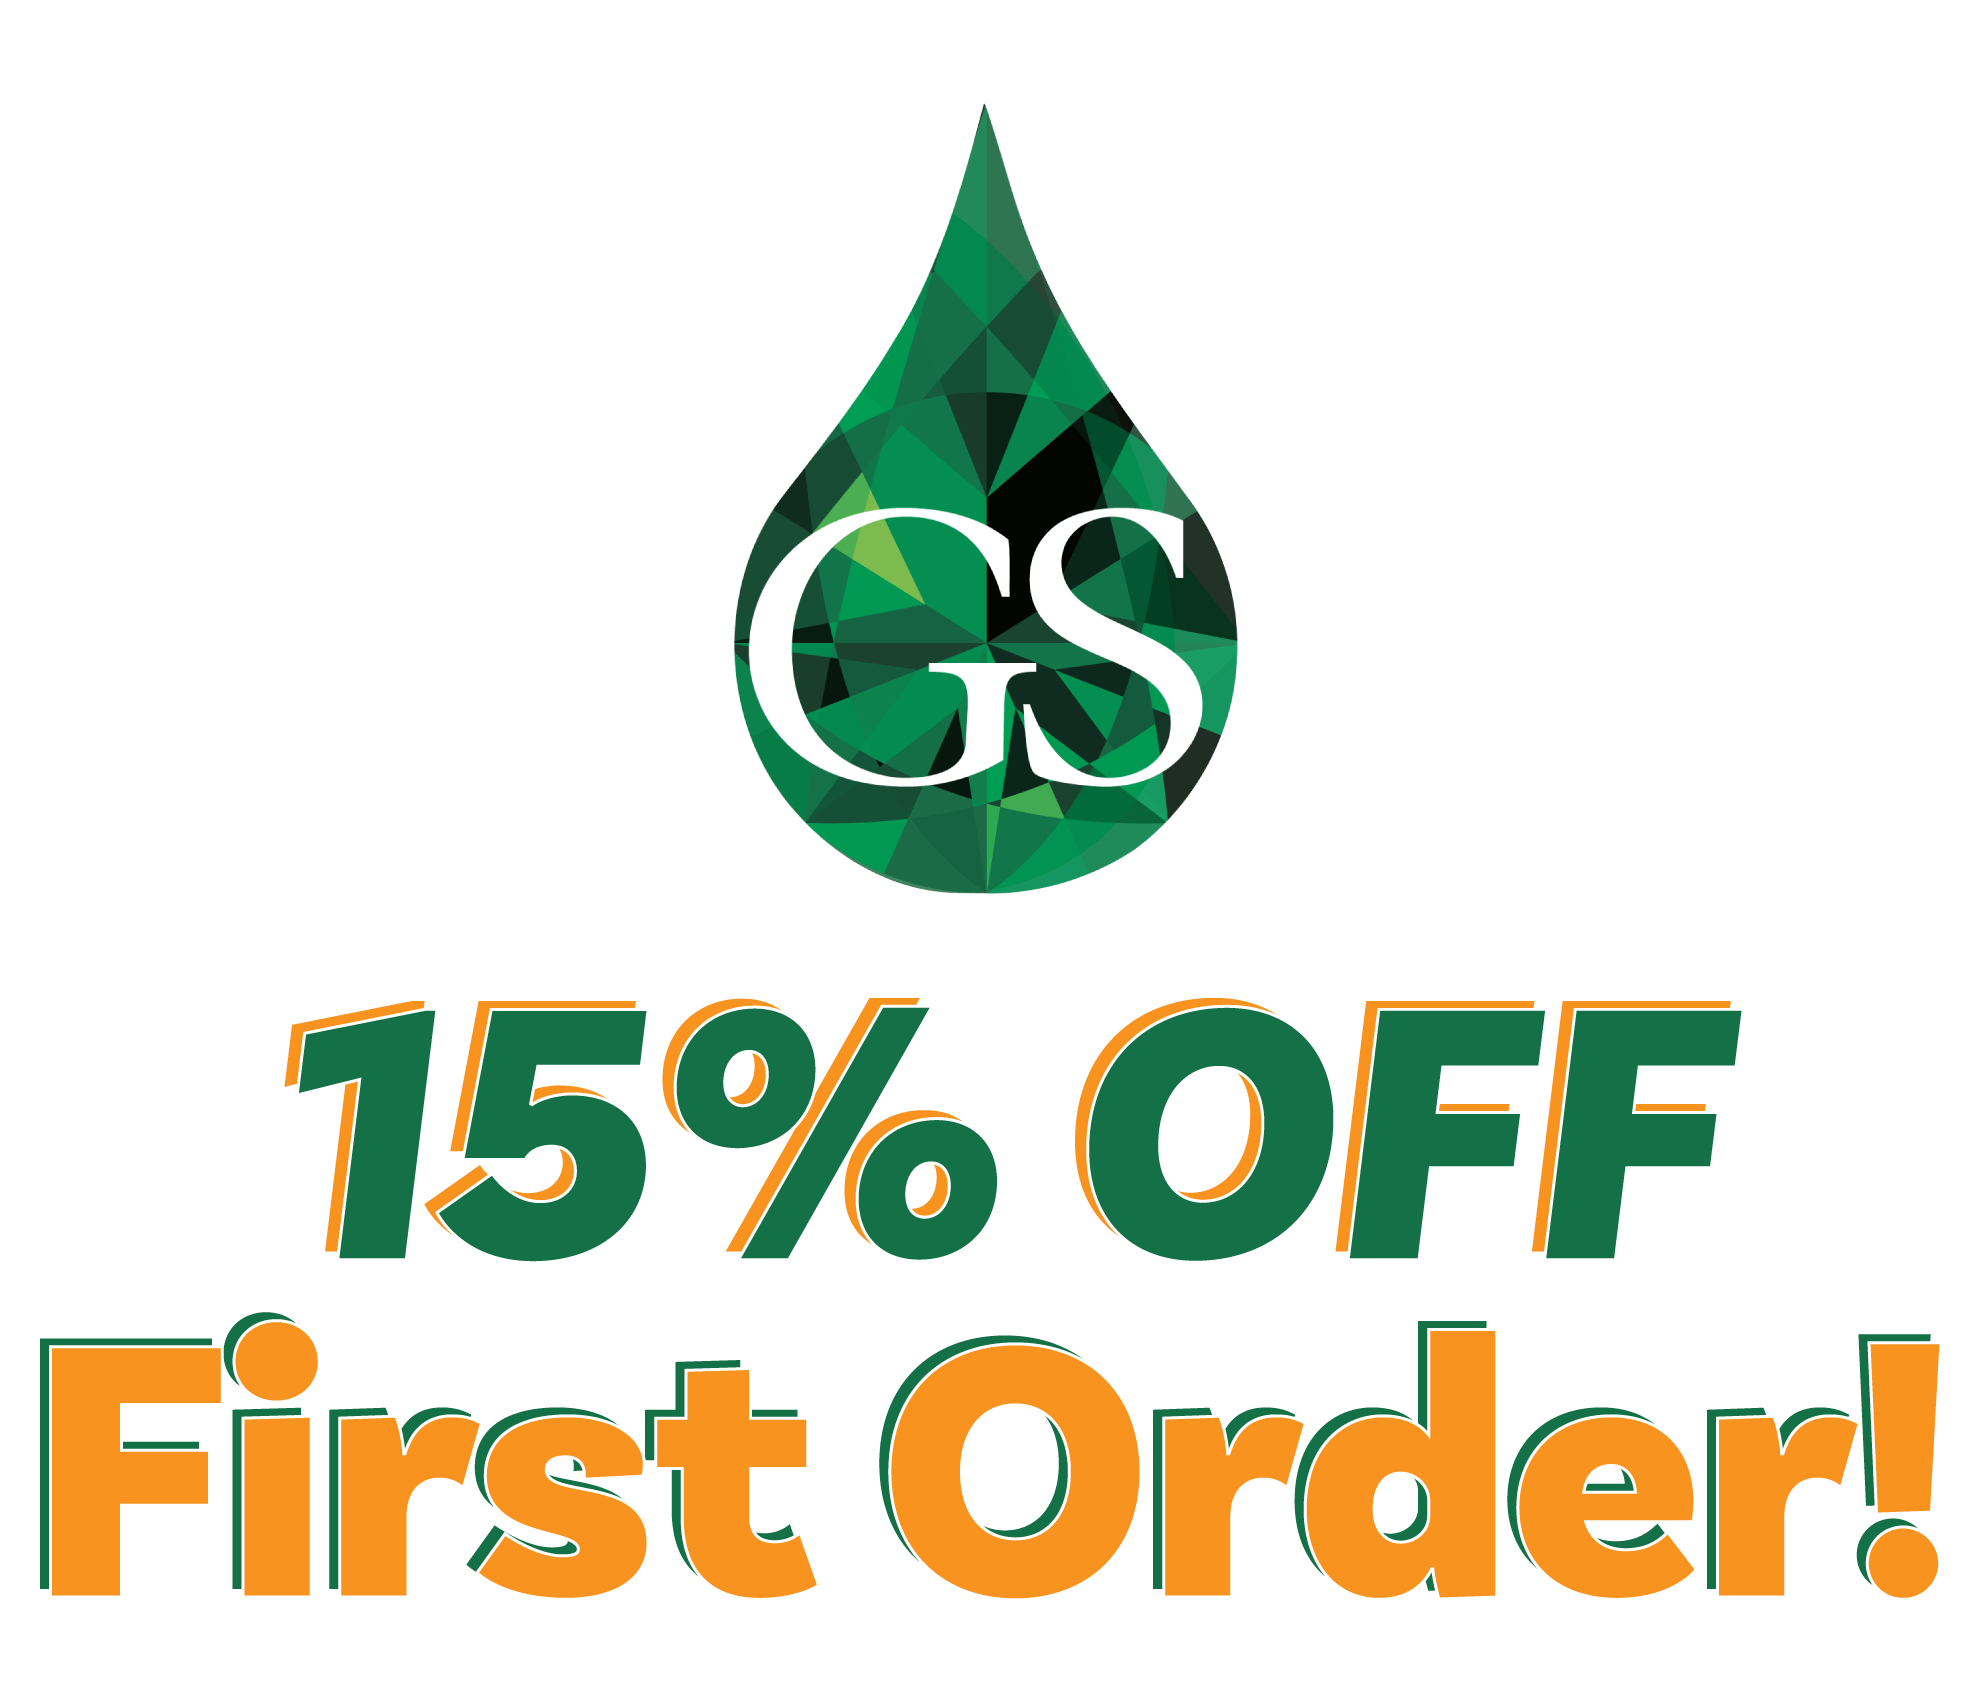 Green Spectrums_15 off first order